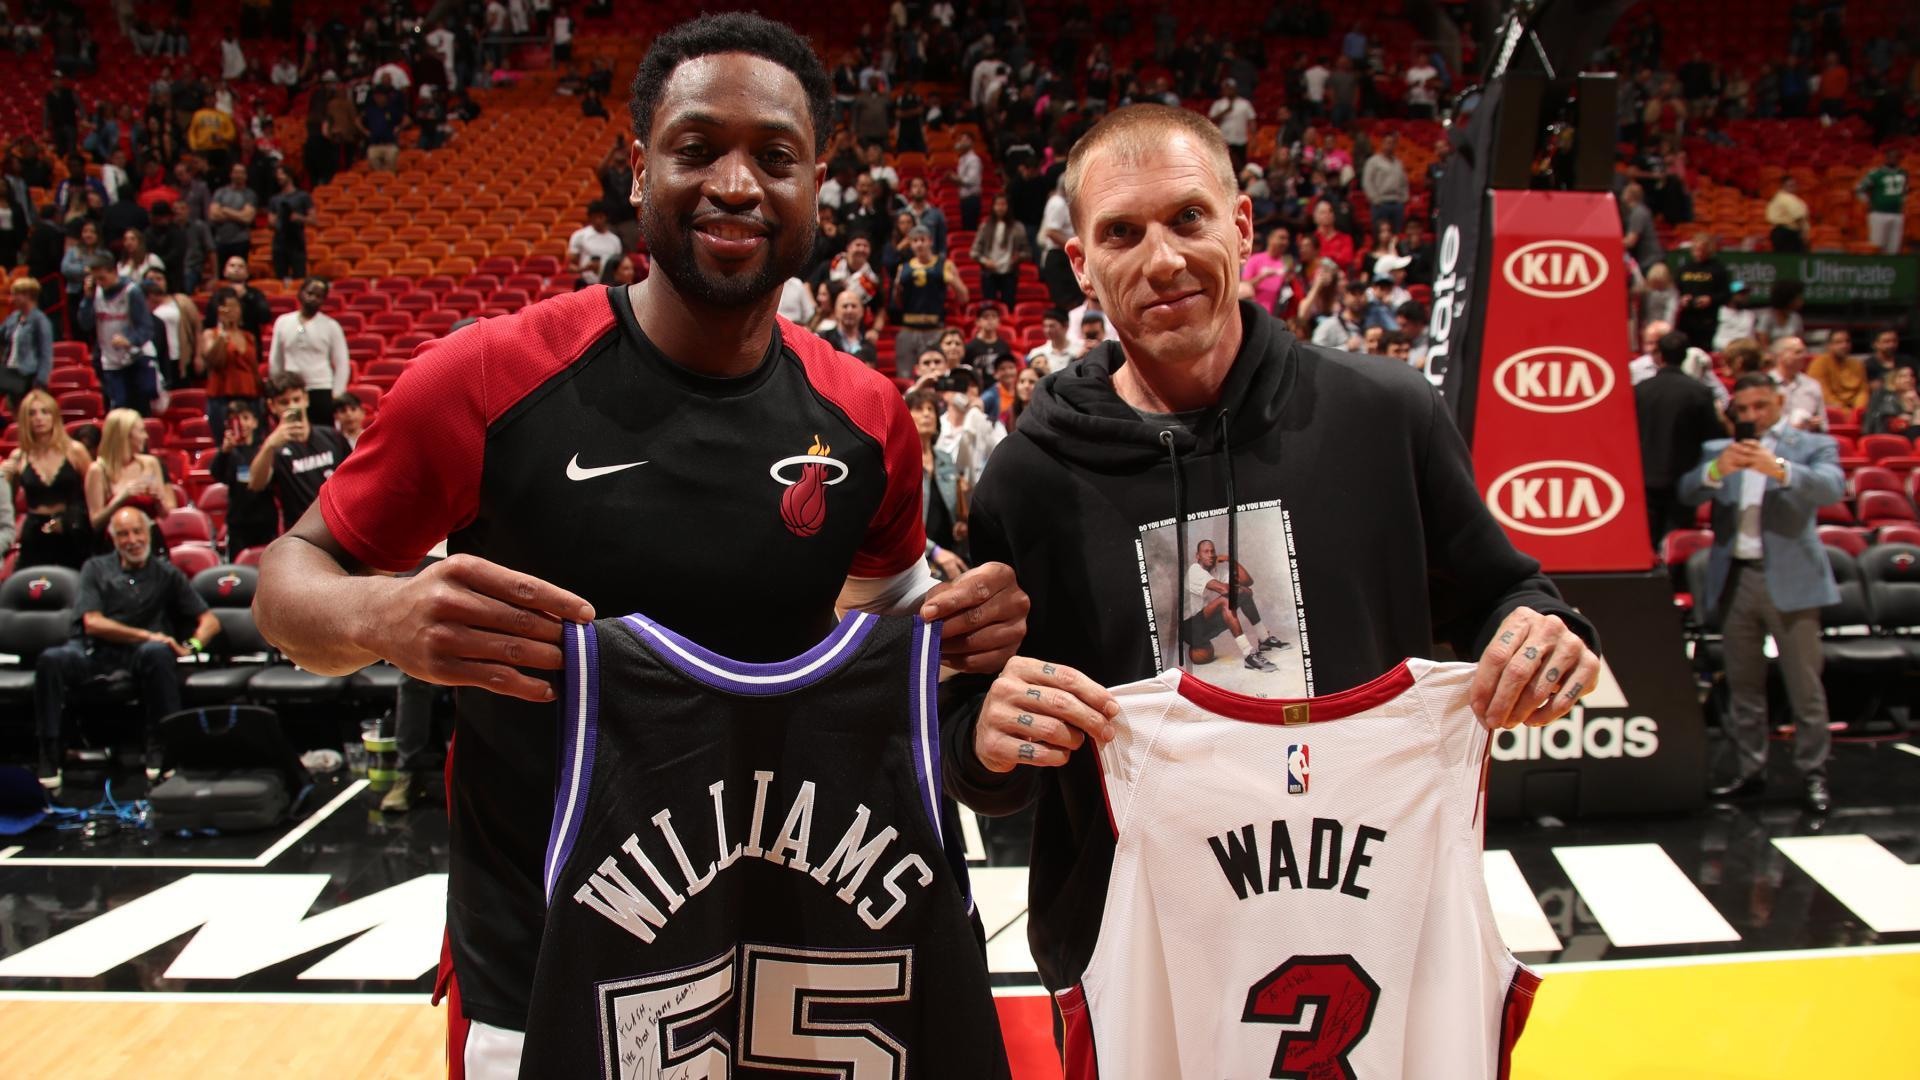 LeBron James, Carmelo Anthony Among Stars At Dwyane Wade's Final Game